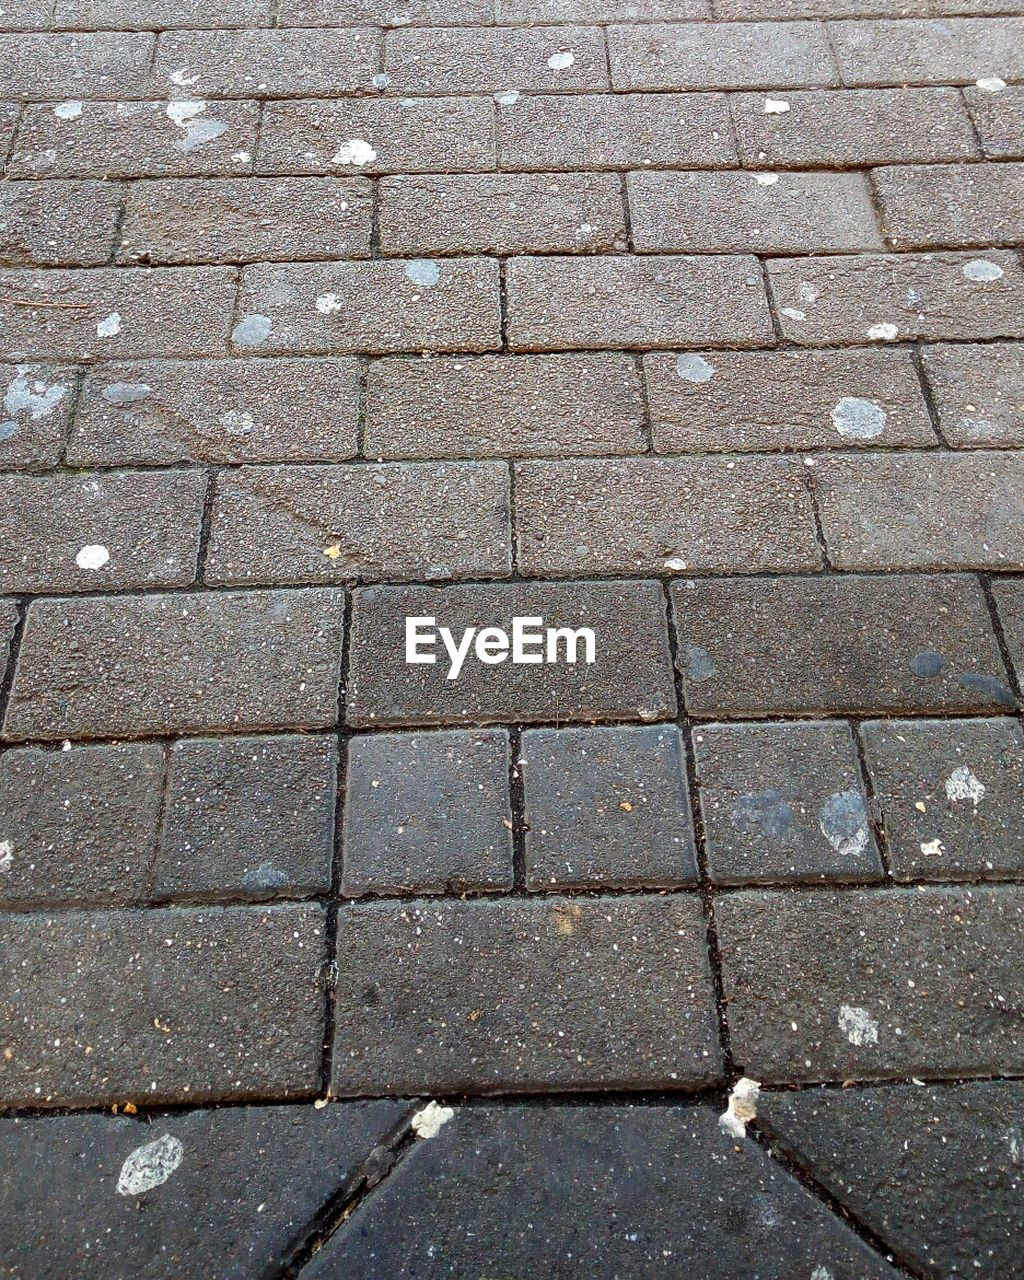 footpath, pattern, backgrounds, full frame, high angle view, stone, street, no people, city, paving stone, day, cobblestone, textured, outdoors, stone material, road, nature, solid, transportation, sidewalk